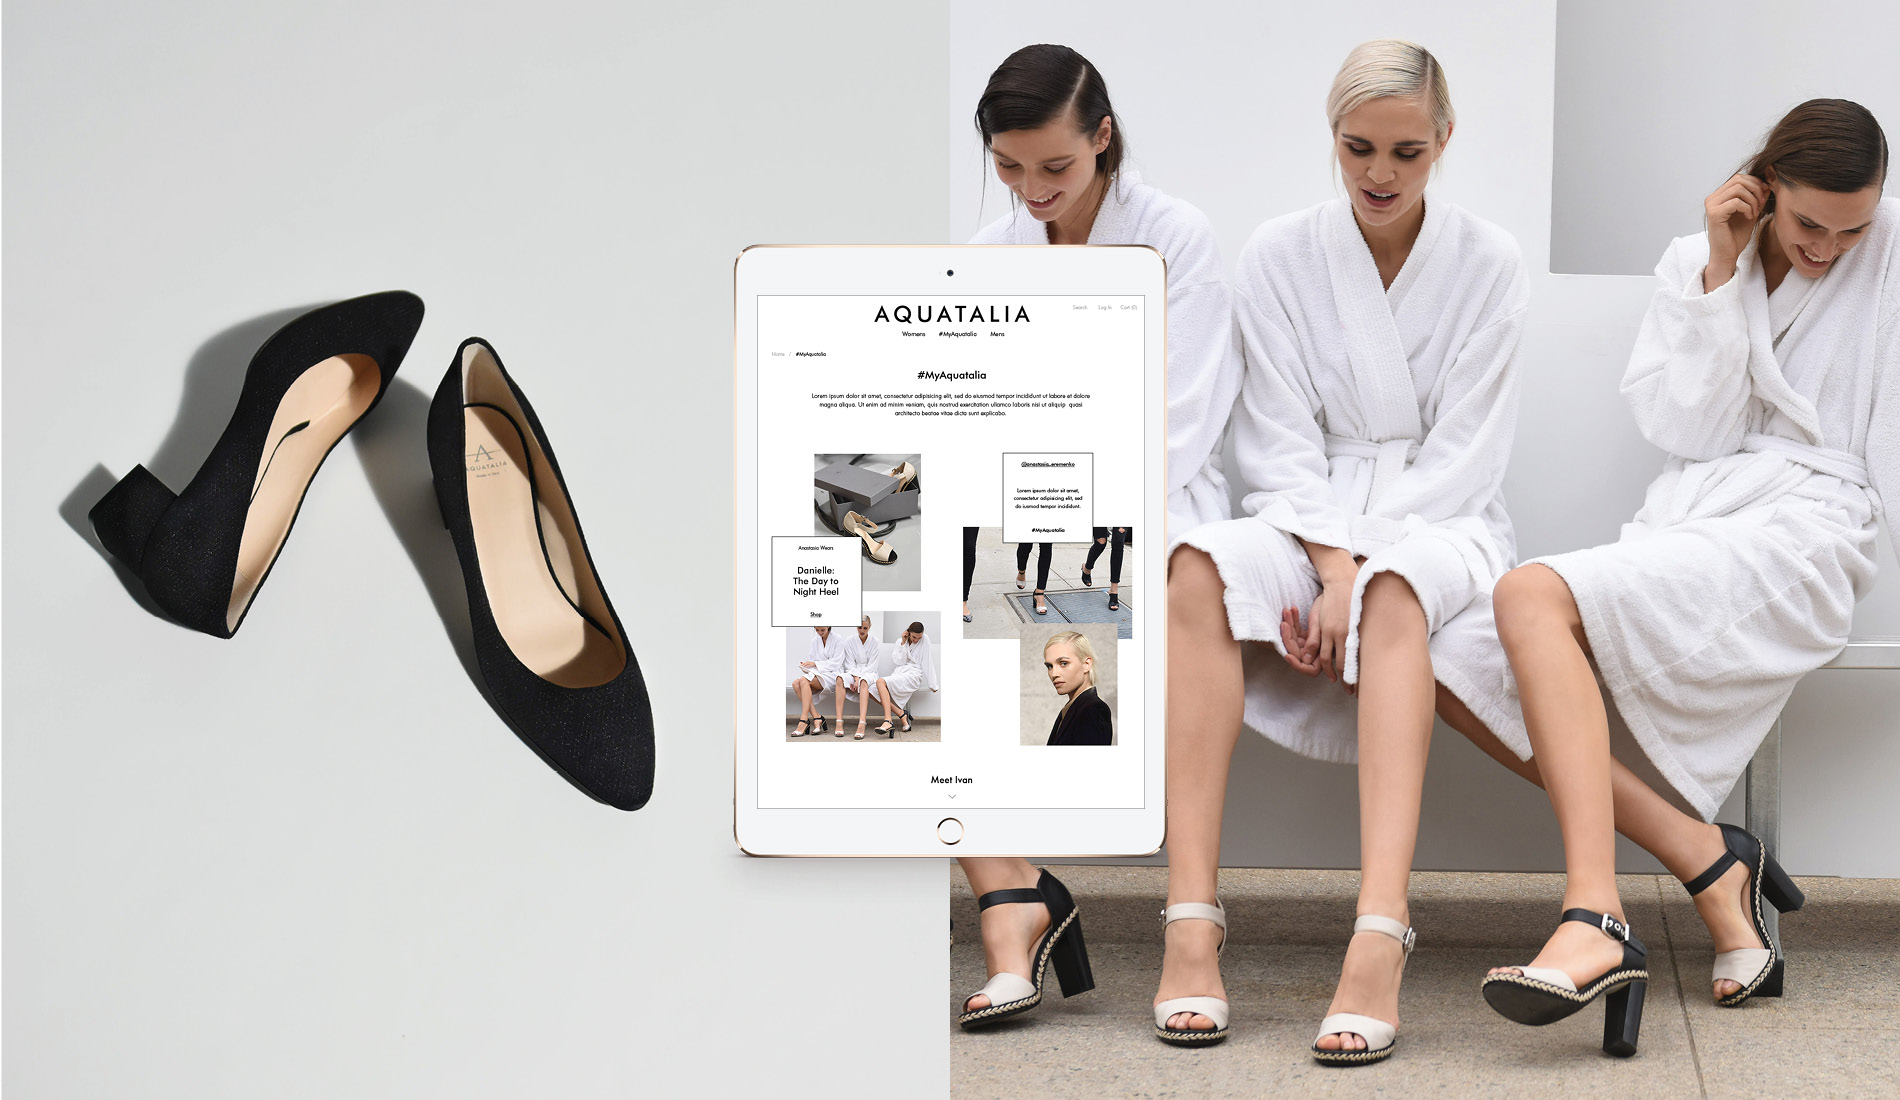 Models in Aquatalia shoes featured in #MyAquatalia social campaign by DTE.